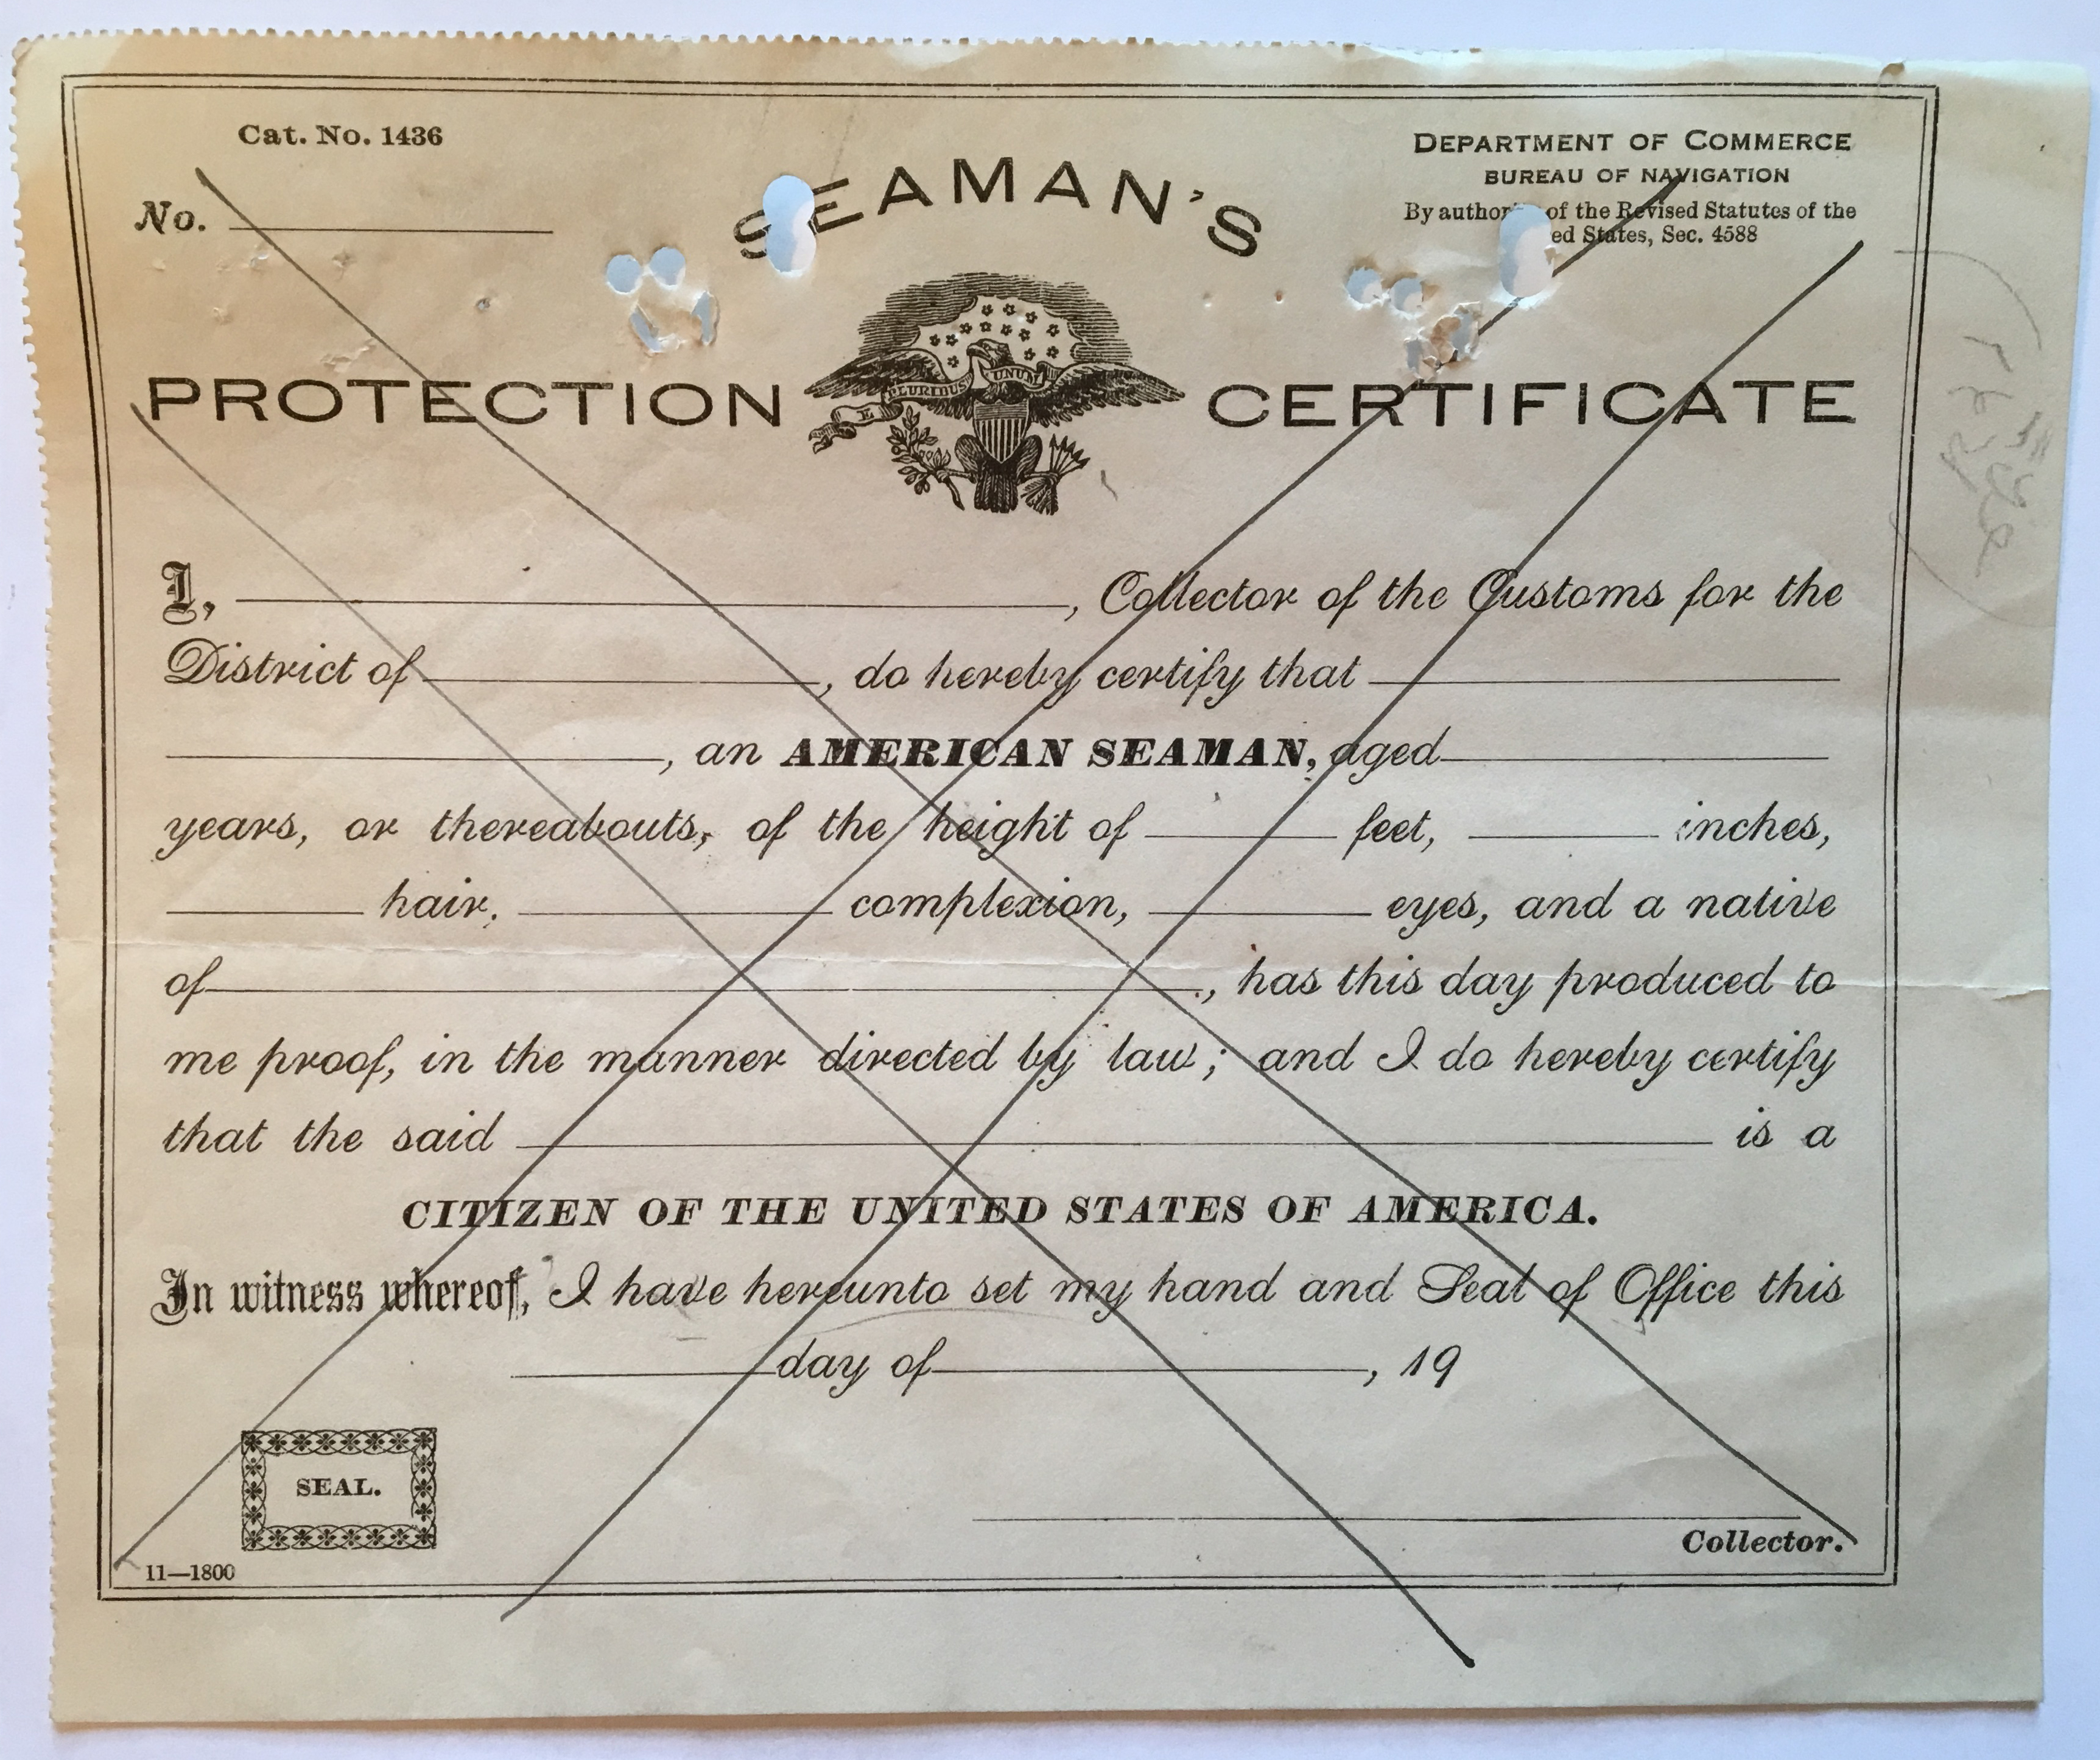 Seaman's Protection Certificate, c. 1928.